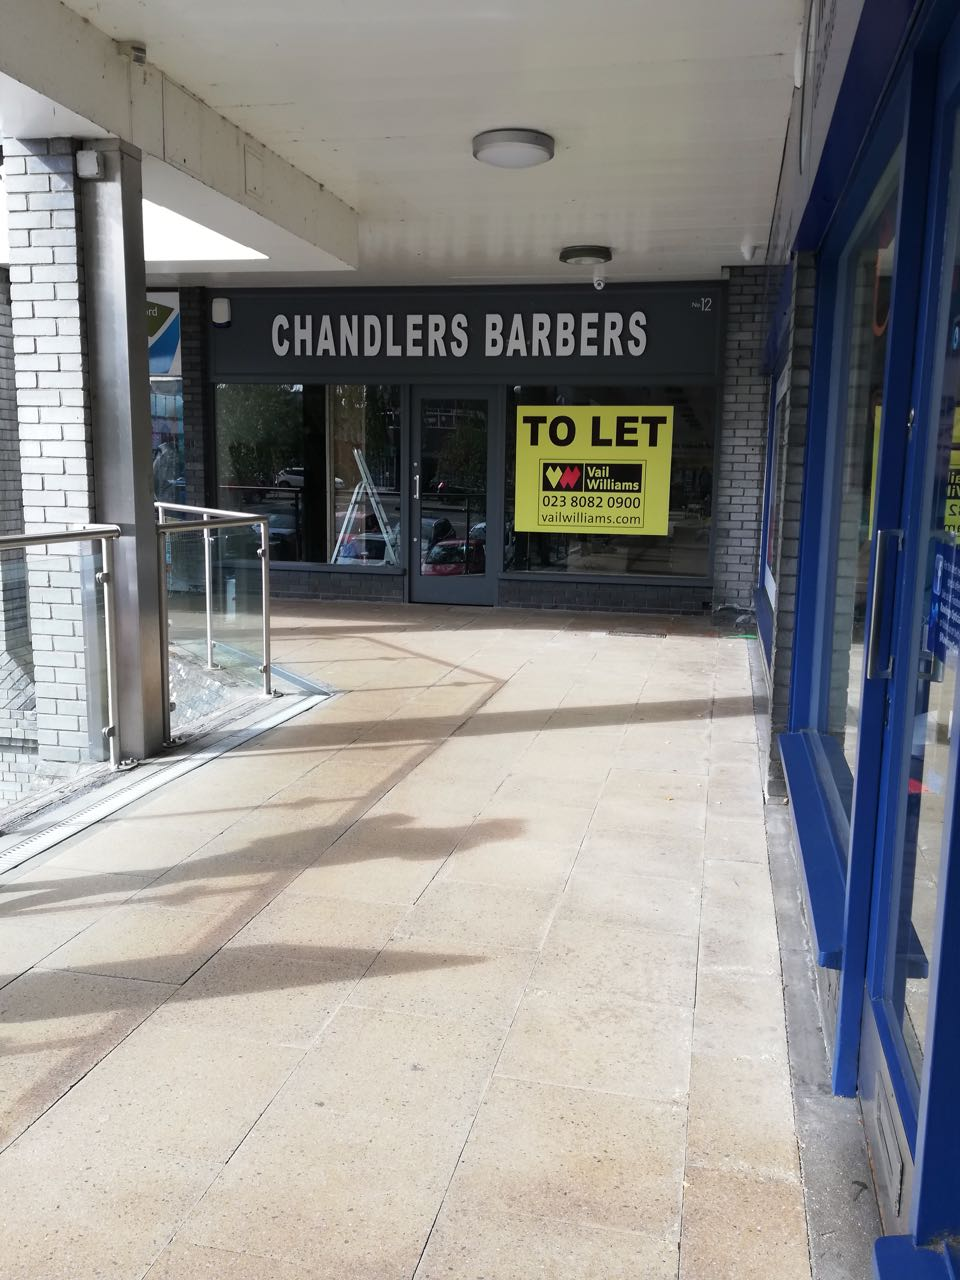 Chandler's Barbers - where is this? What was the business before this?